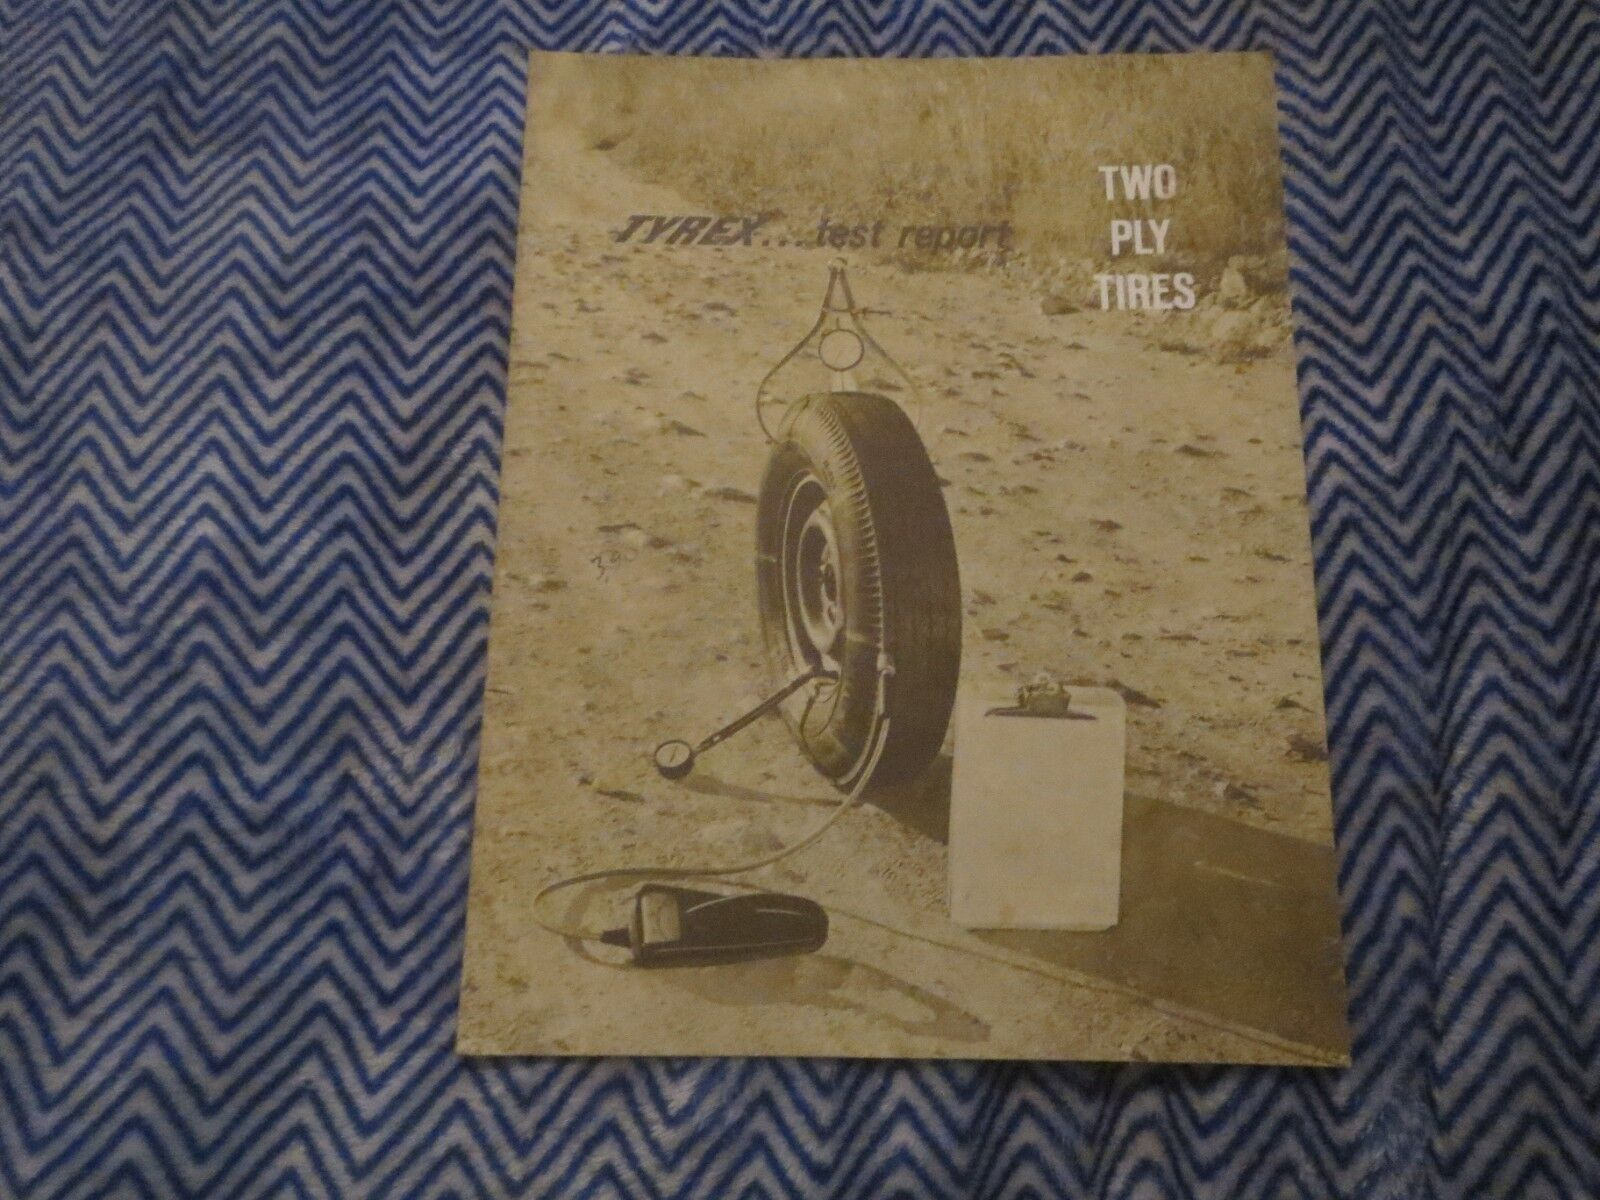 1962 TYREX TEST REPORT TWO PLY TIRES ROAD TEST REPORT ON CORVAIR AND FALCON